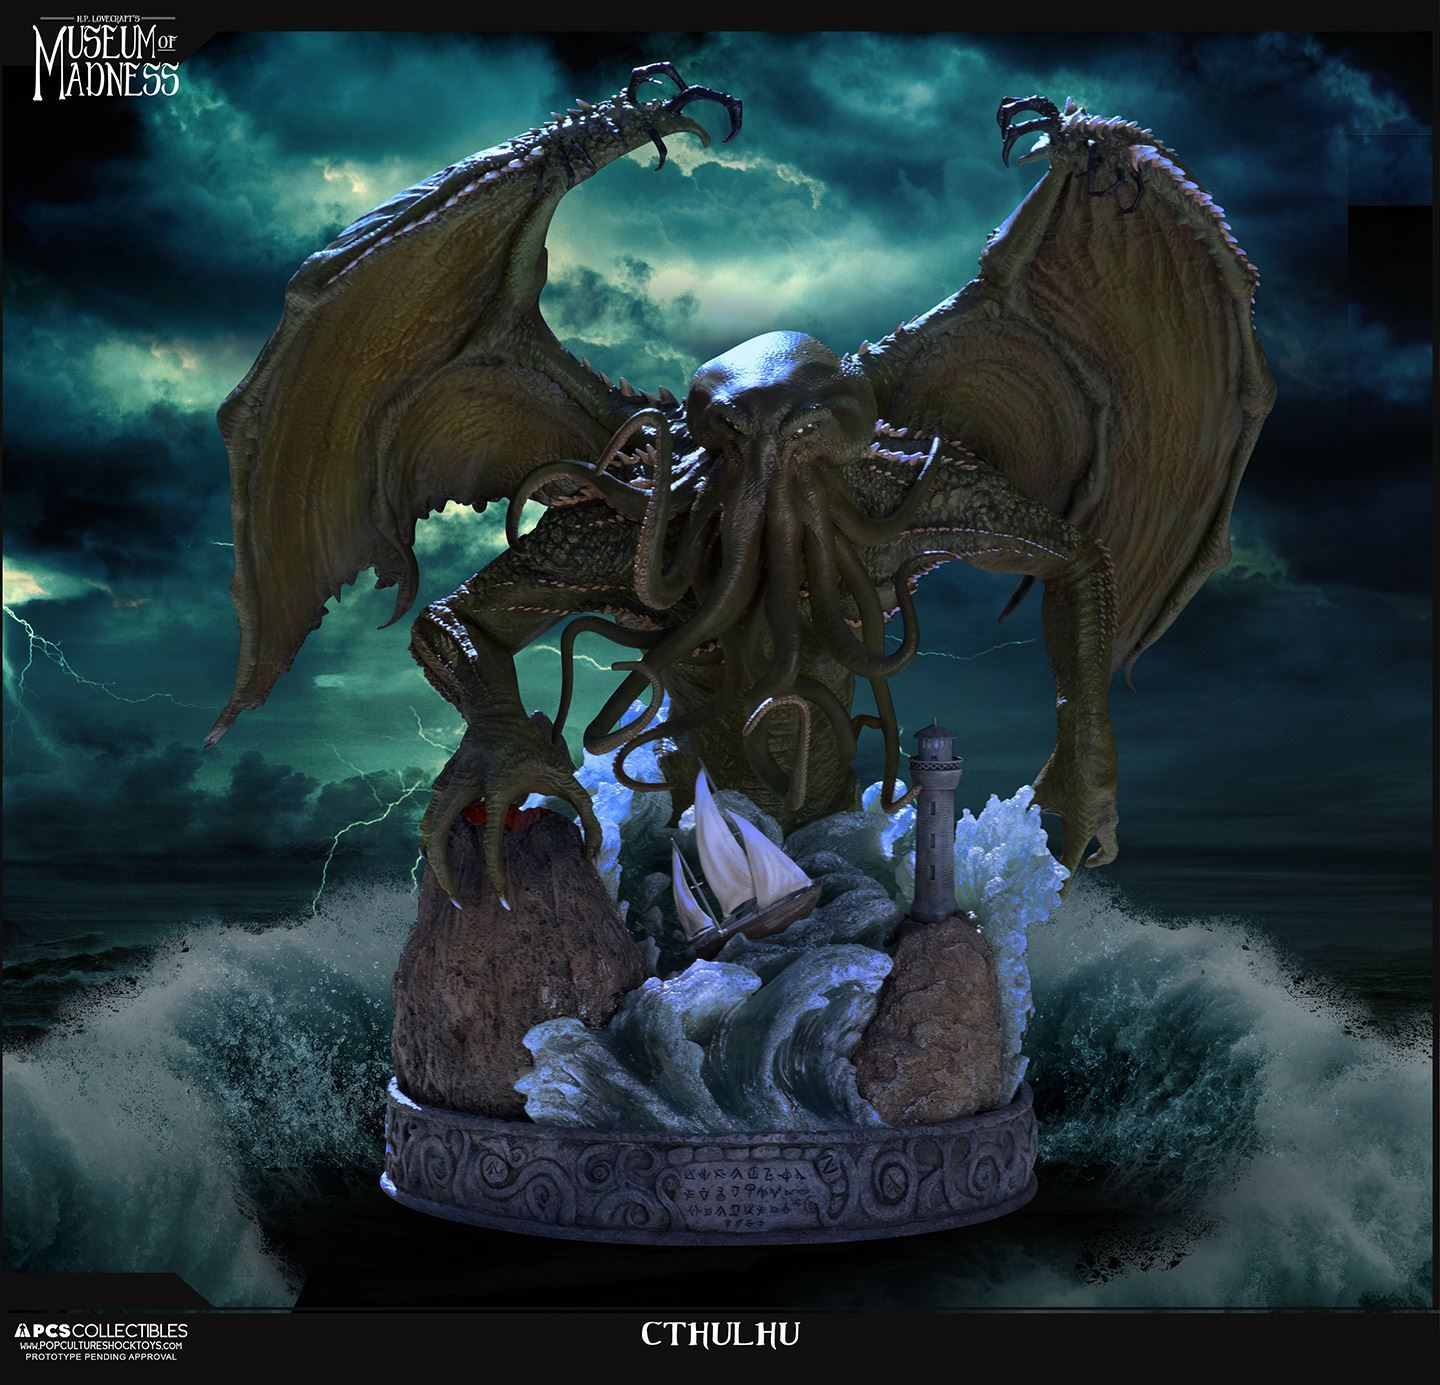 Pre-Order Pop Culture Shock Cthulhu Statue